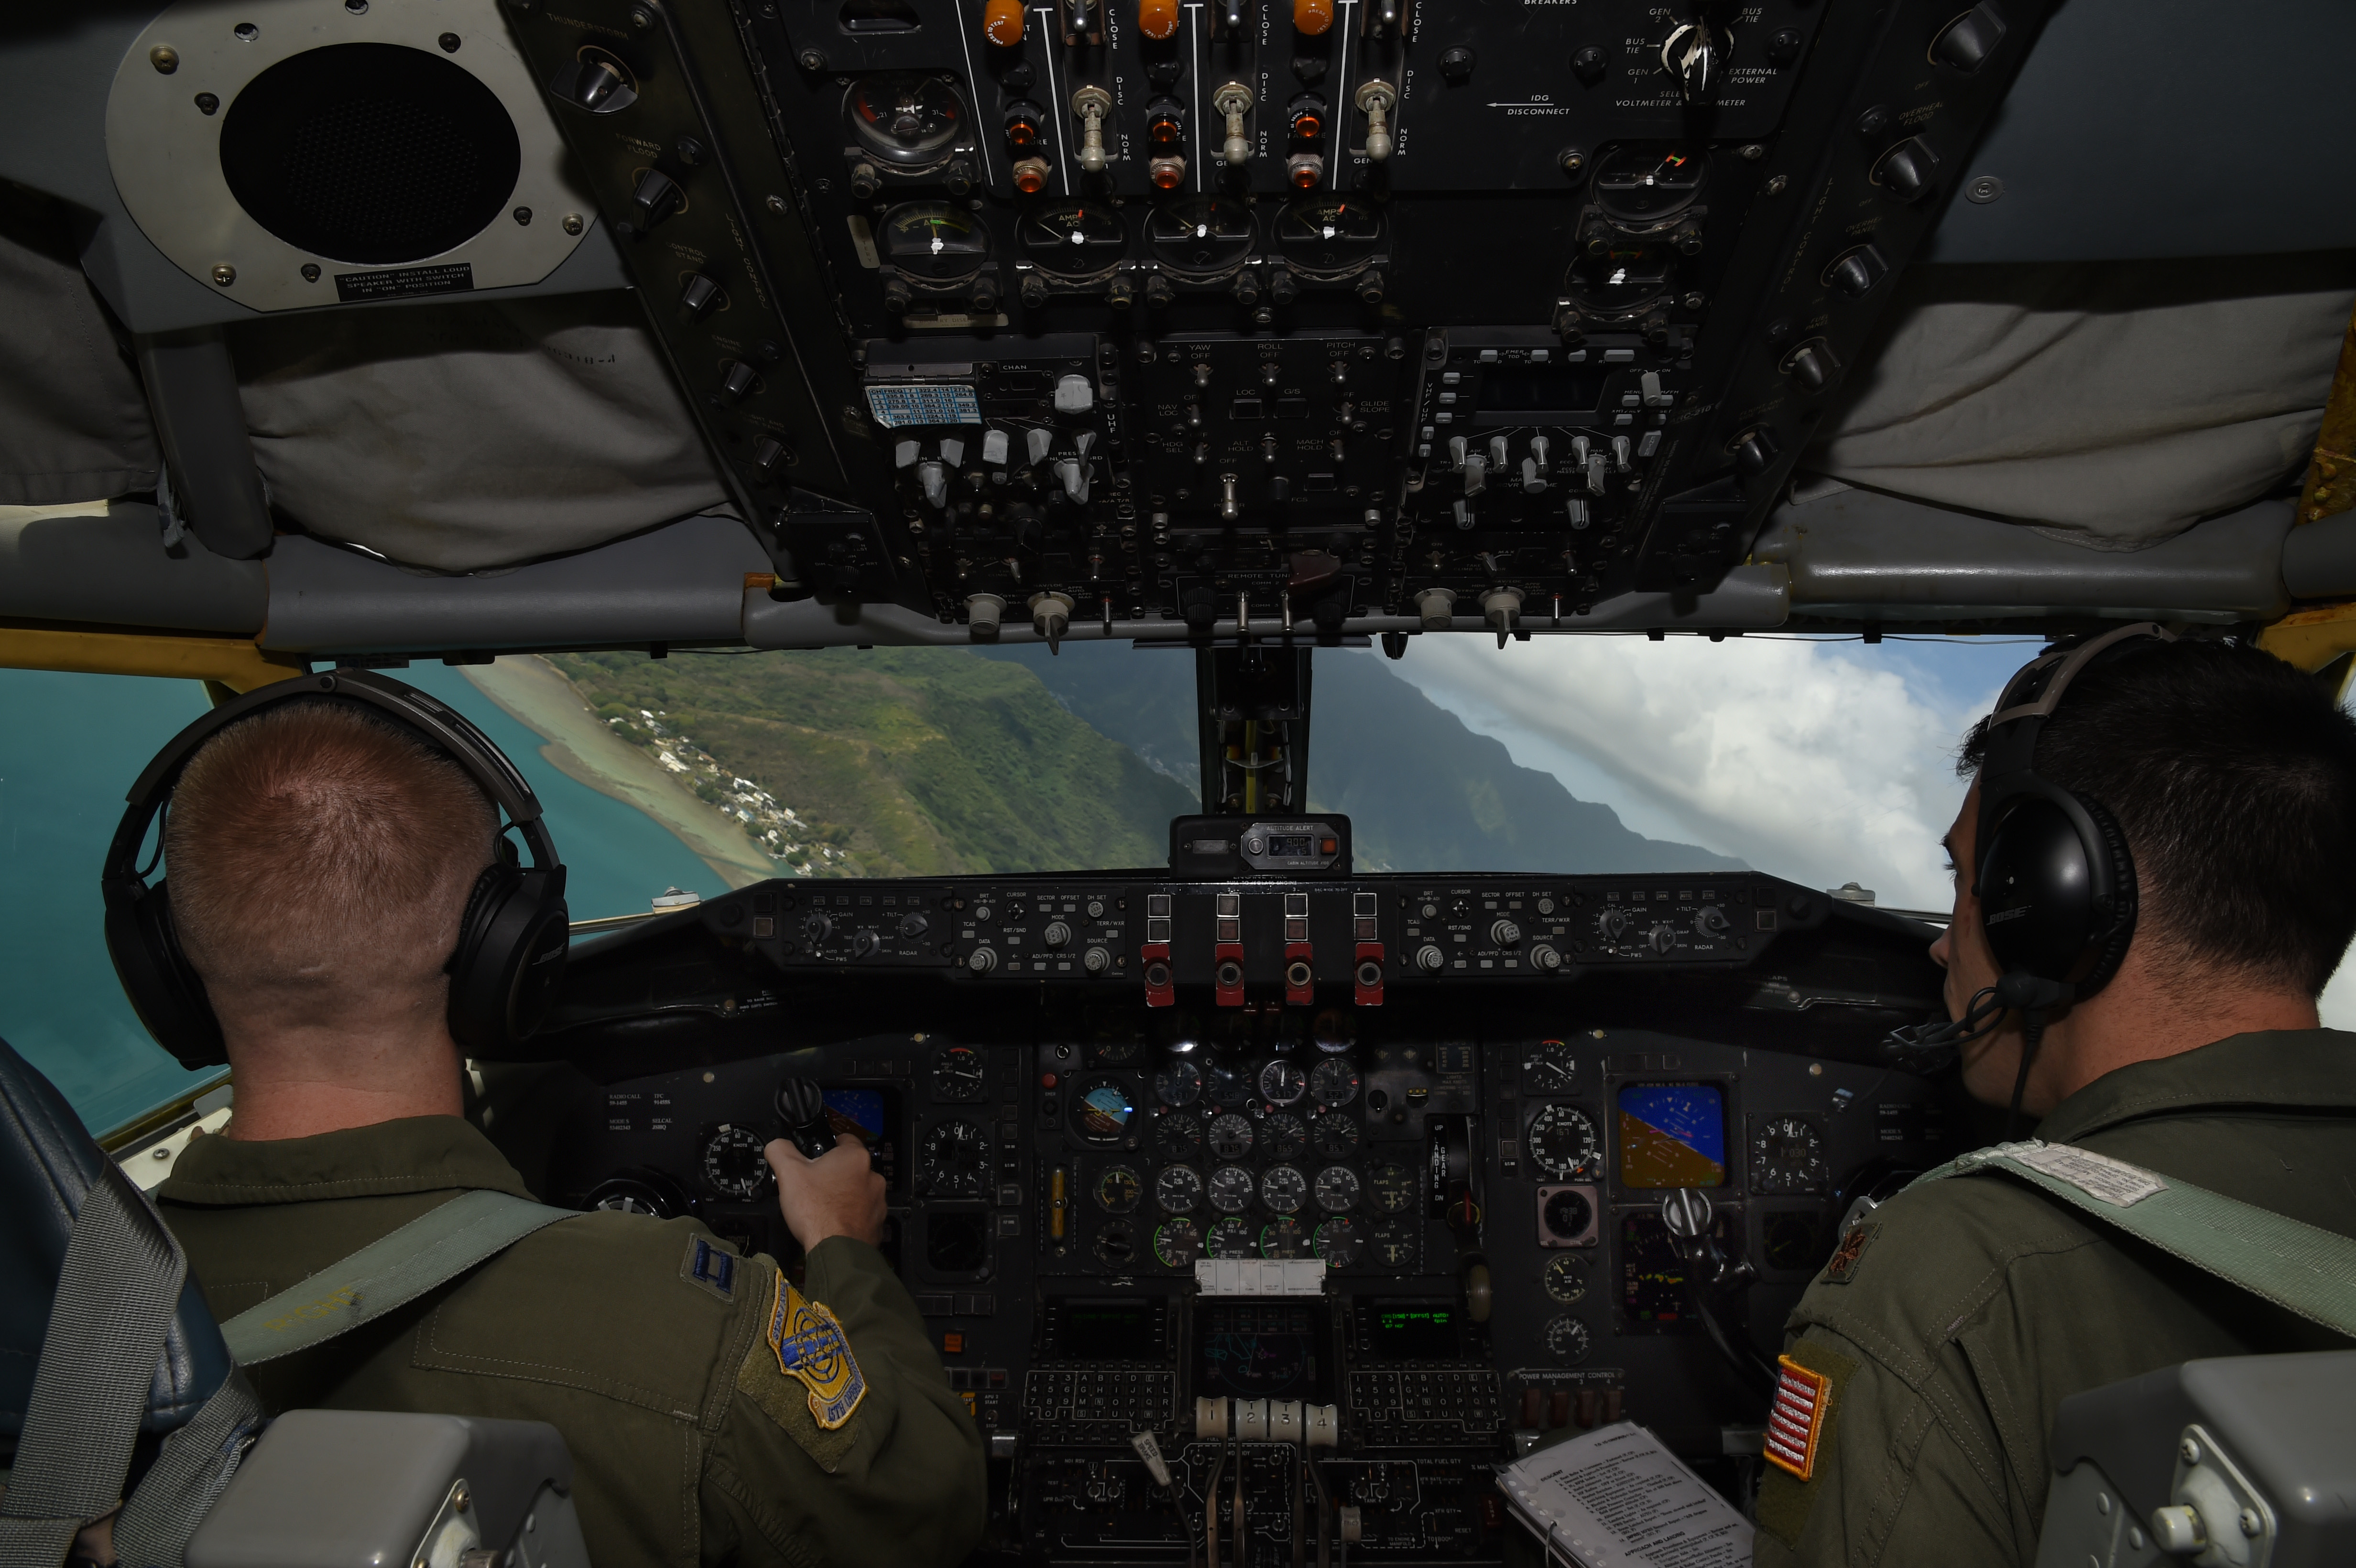 (Left) Capt. Ryan Miller and Maj. Dan Allen, both pilots for the 96th Air Refueling Squadron, turn the KC-135R Stratotanker in preparation for a touch and go landing on Marine Corps Air Station Kaneohe Bay, Hawaii, May 19, 2015. (U.S. Air Force photo by Tech. Sgt. Aaron Oelrich/Released)